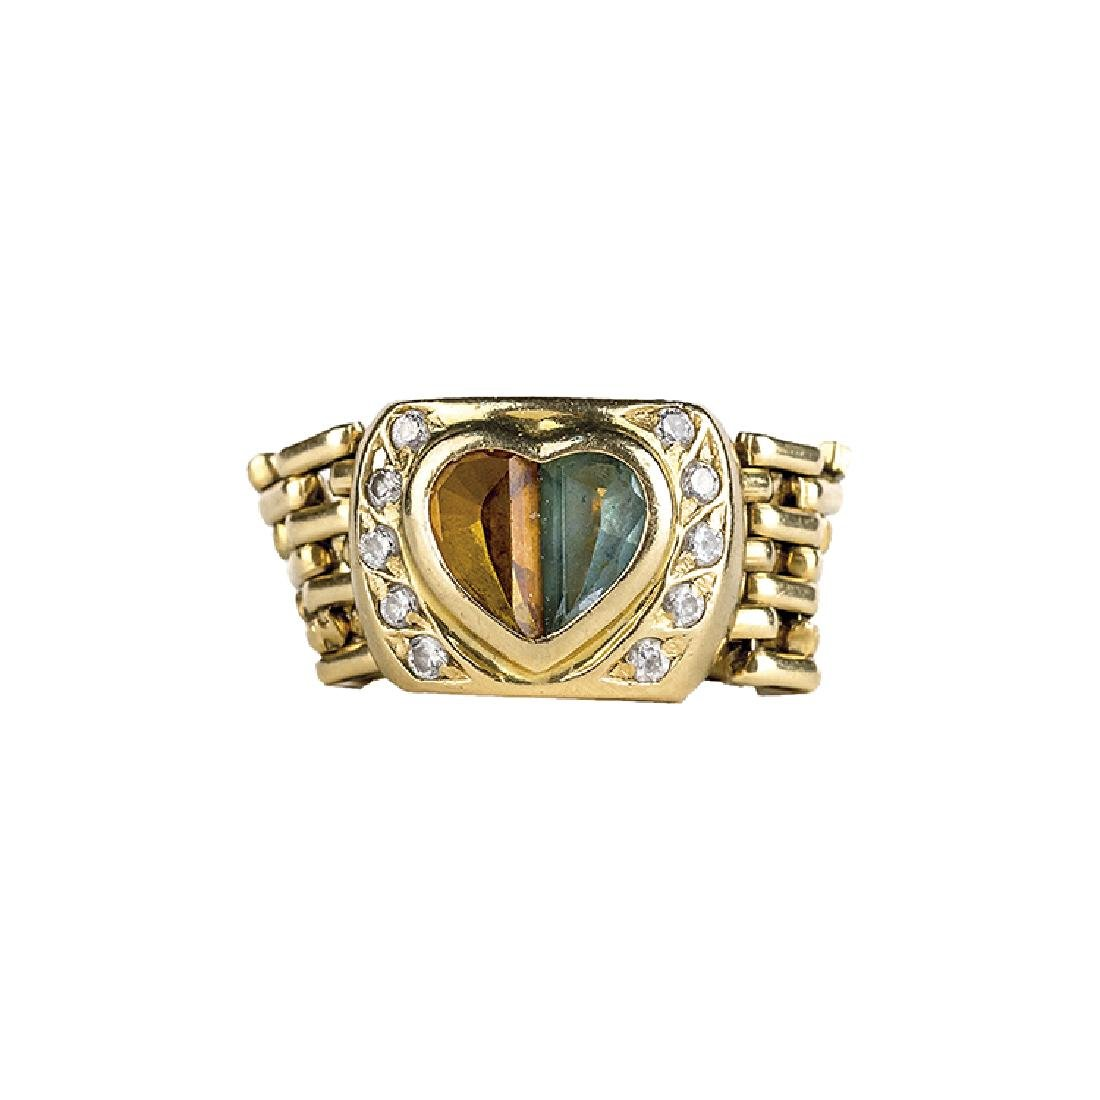 Gold ring with two heart-shaped stones